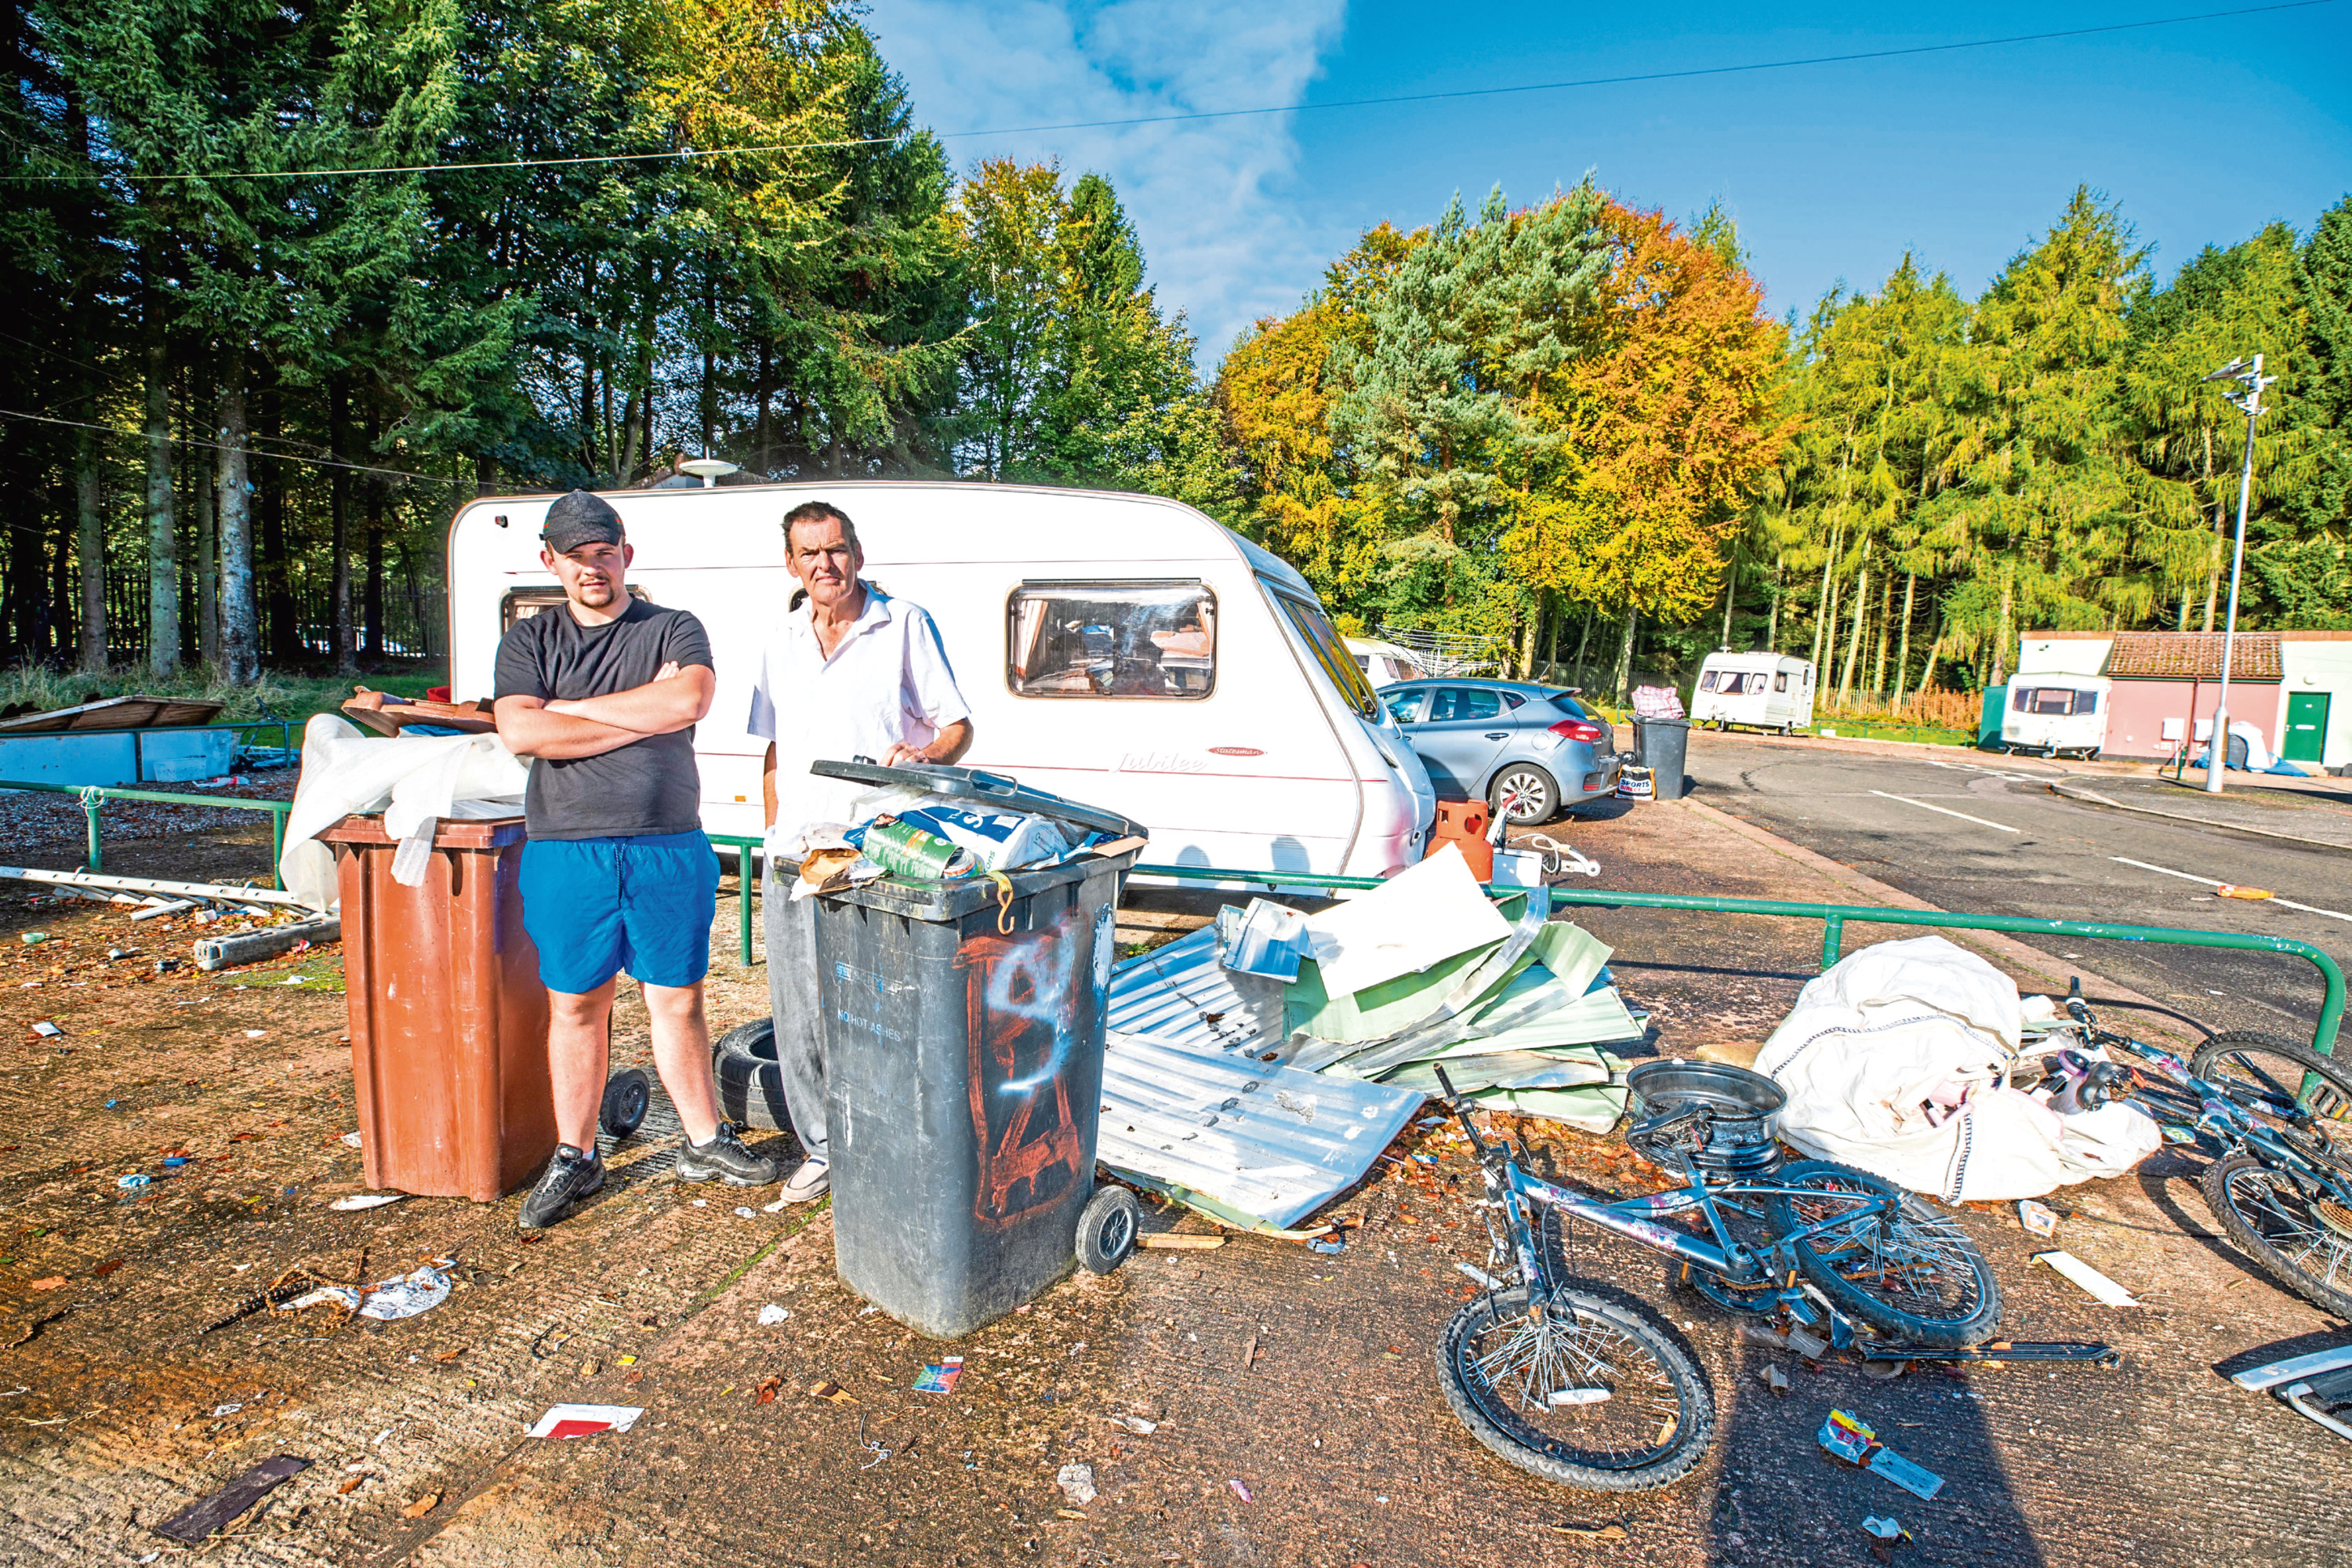 Wallace McPhee (left) and Andrew Kidd alongside some of the discarded items.